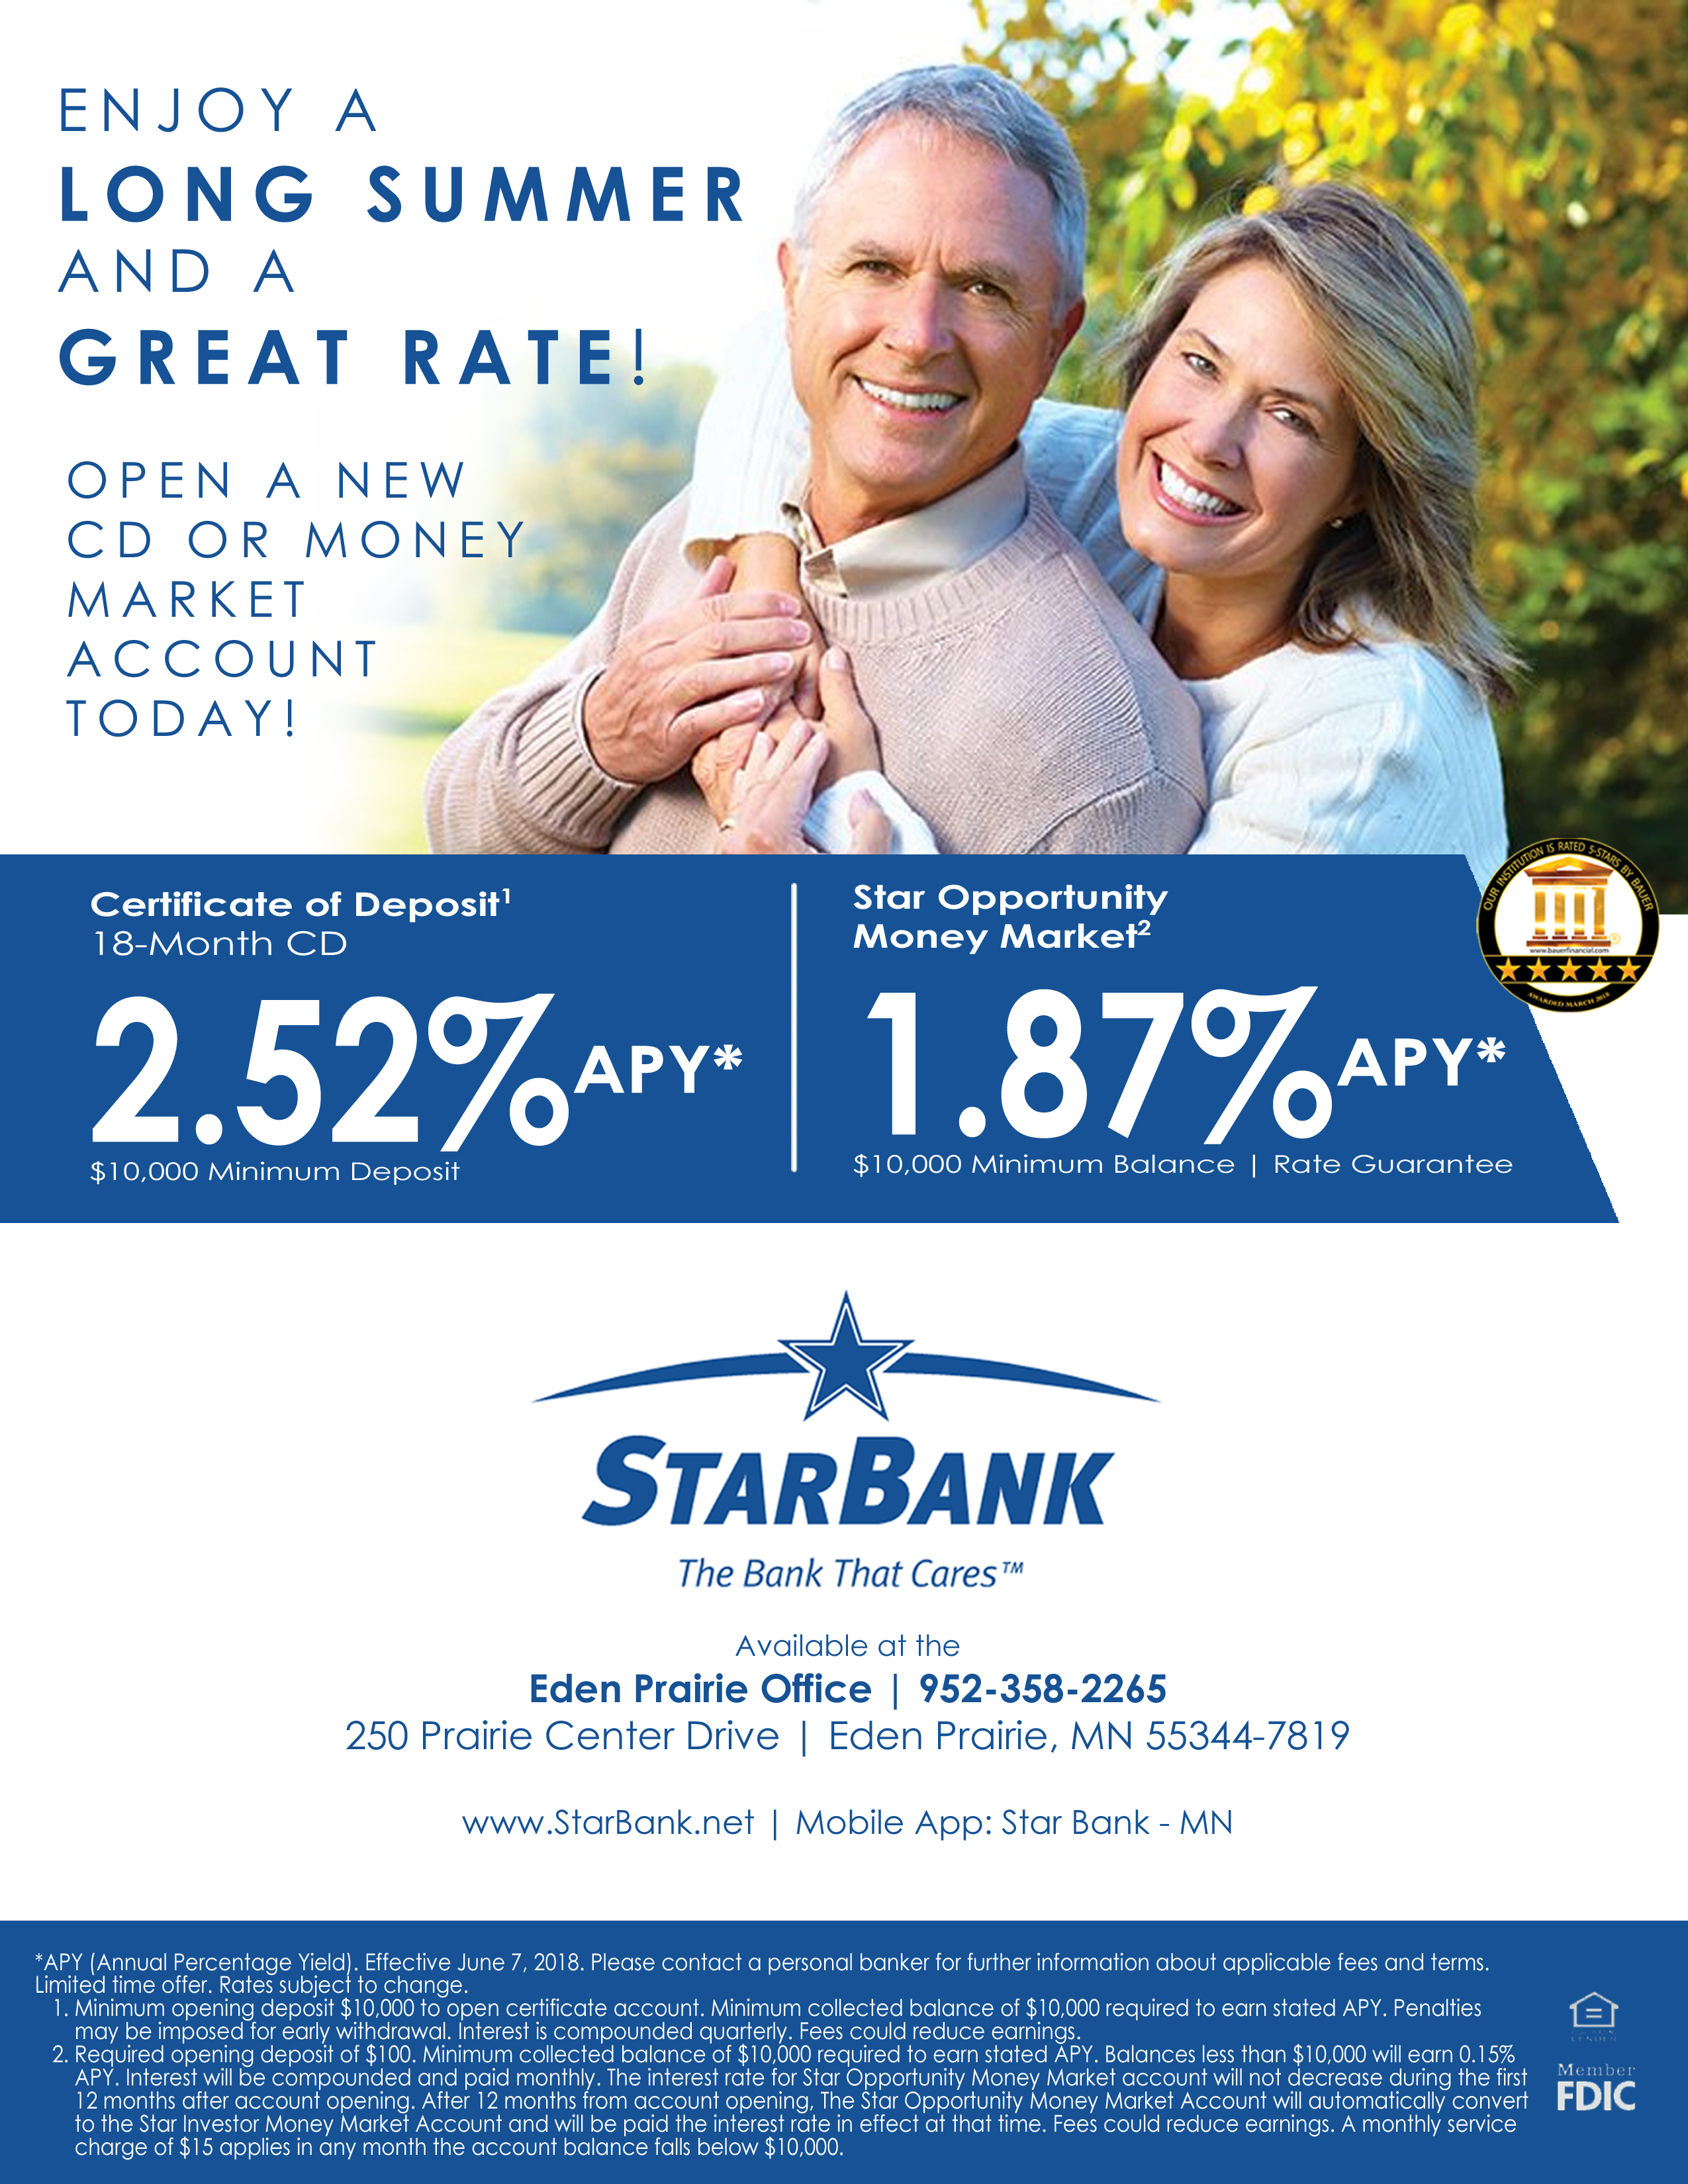 Cds Savings Bank Community Bank Certificates Of Deposit Interest Rate